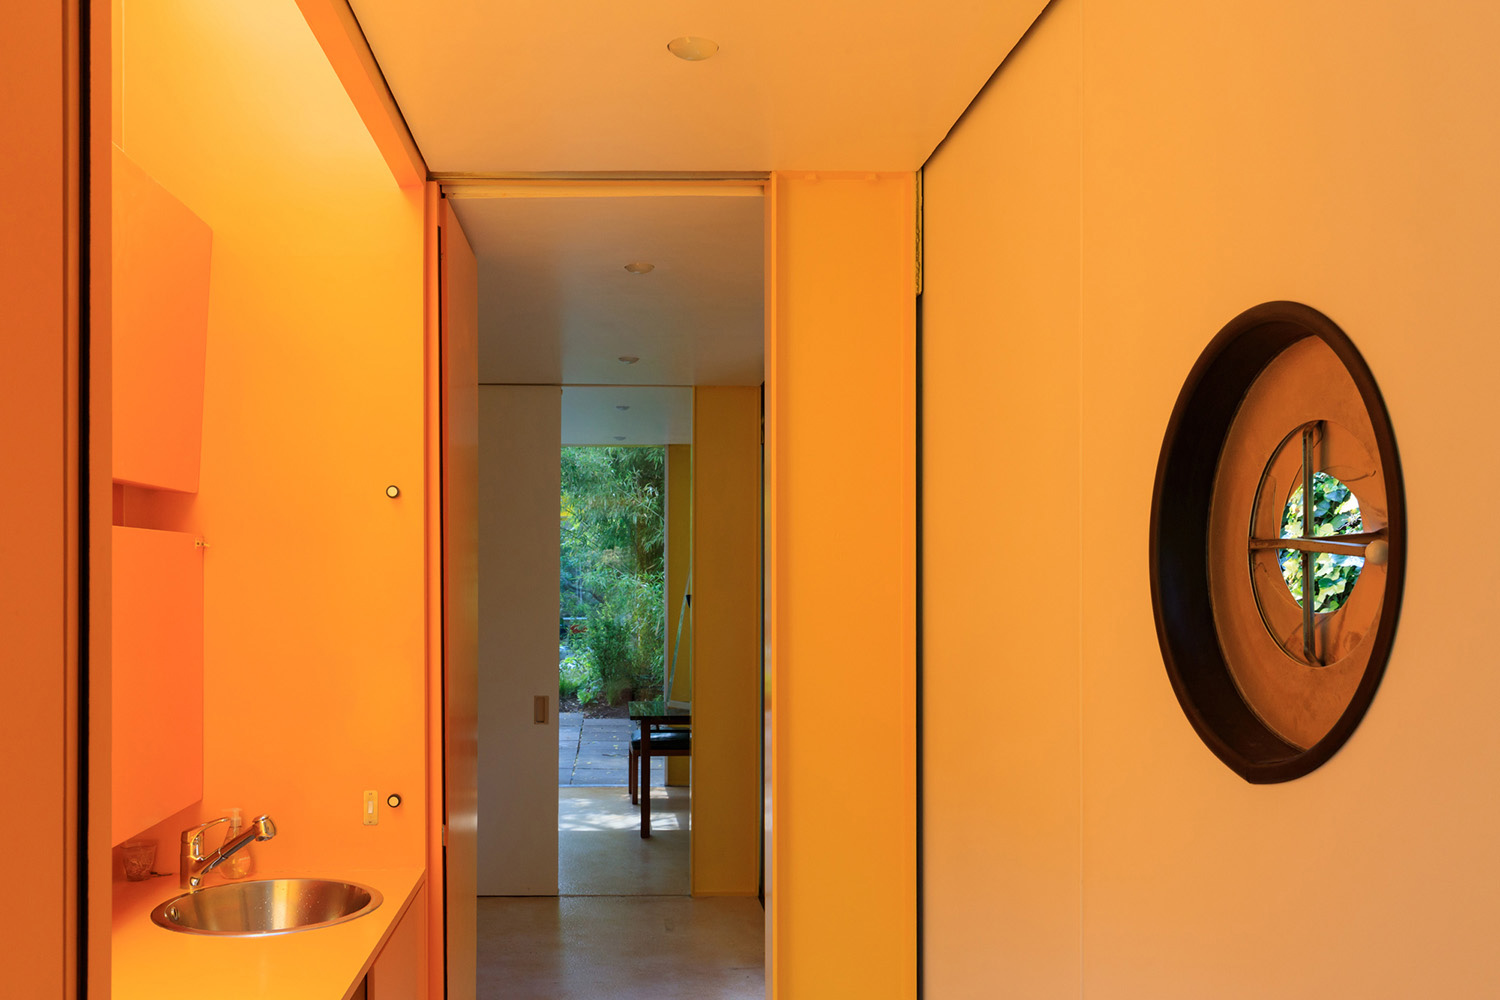 Richard Rogers' 1960 House Renovated by Philip Gumuchdjian